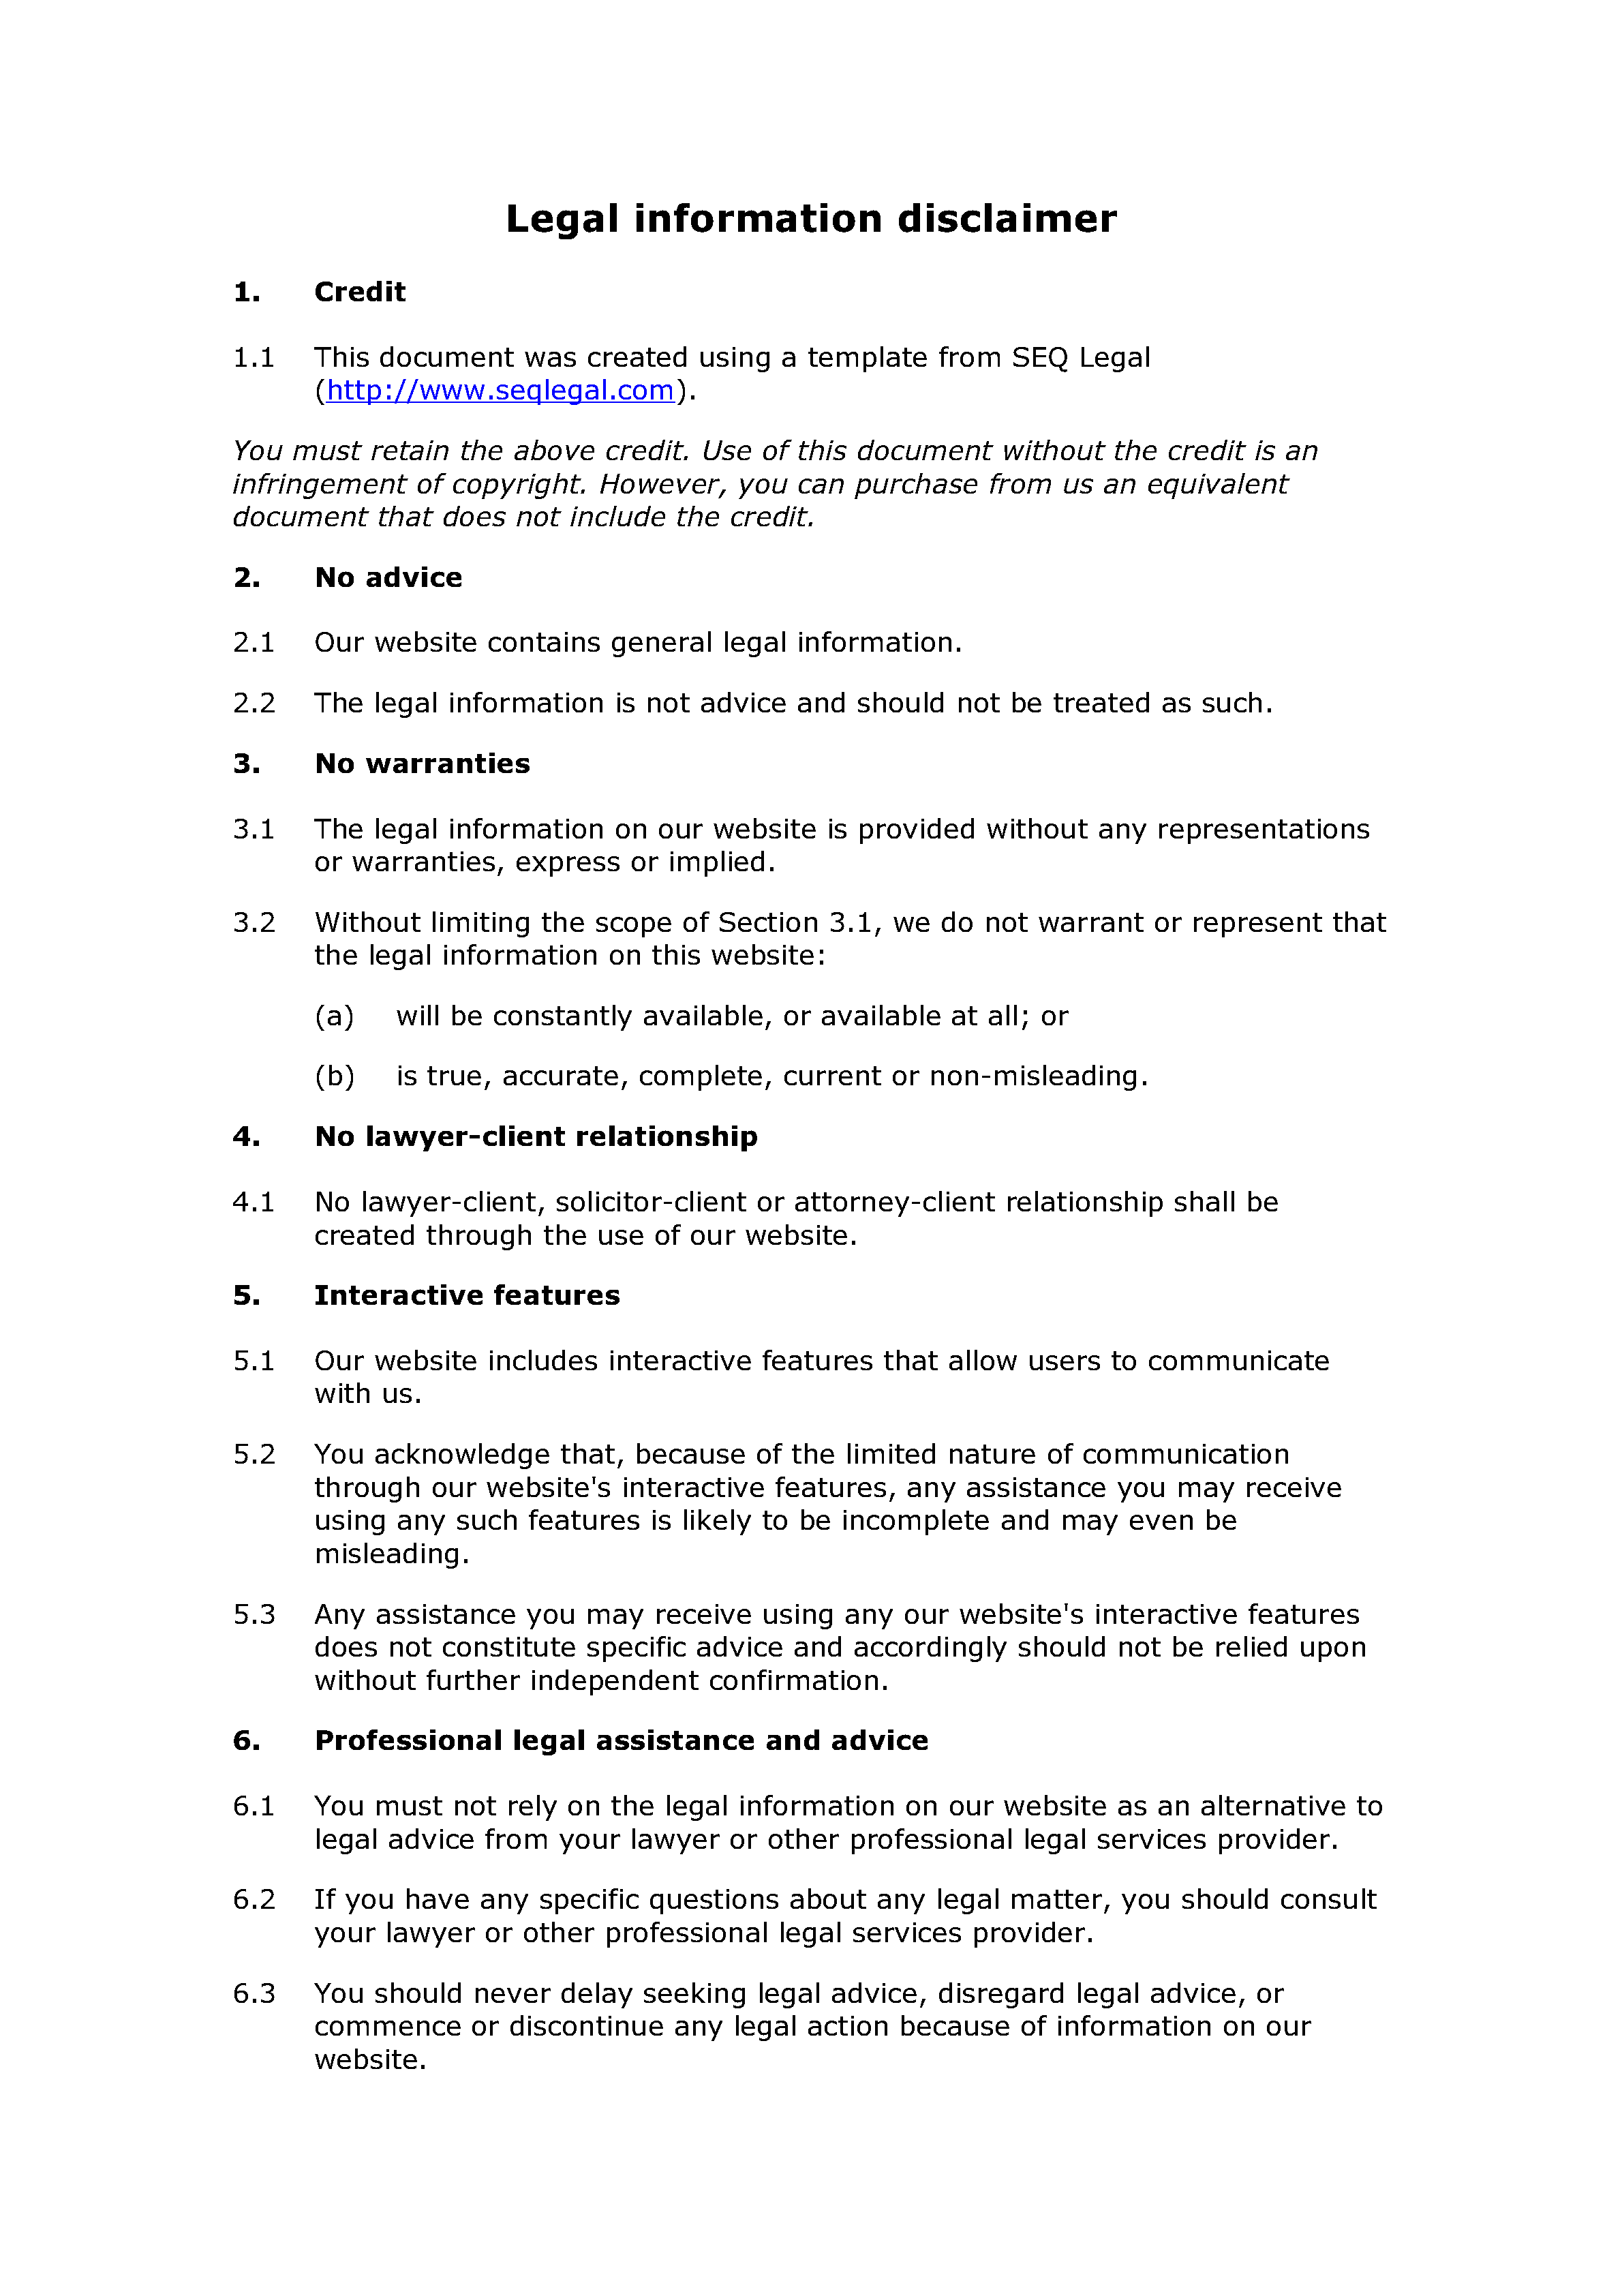 Free legal information disclaimer document preview